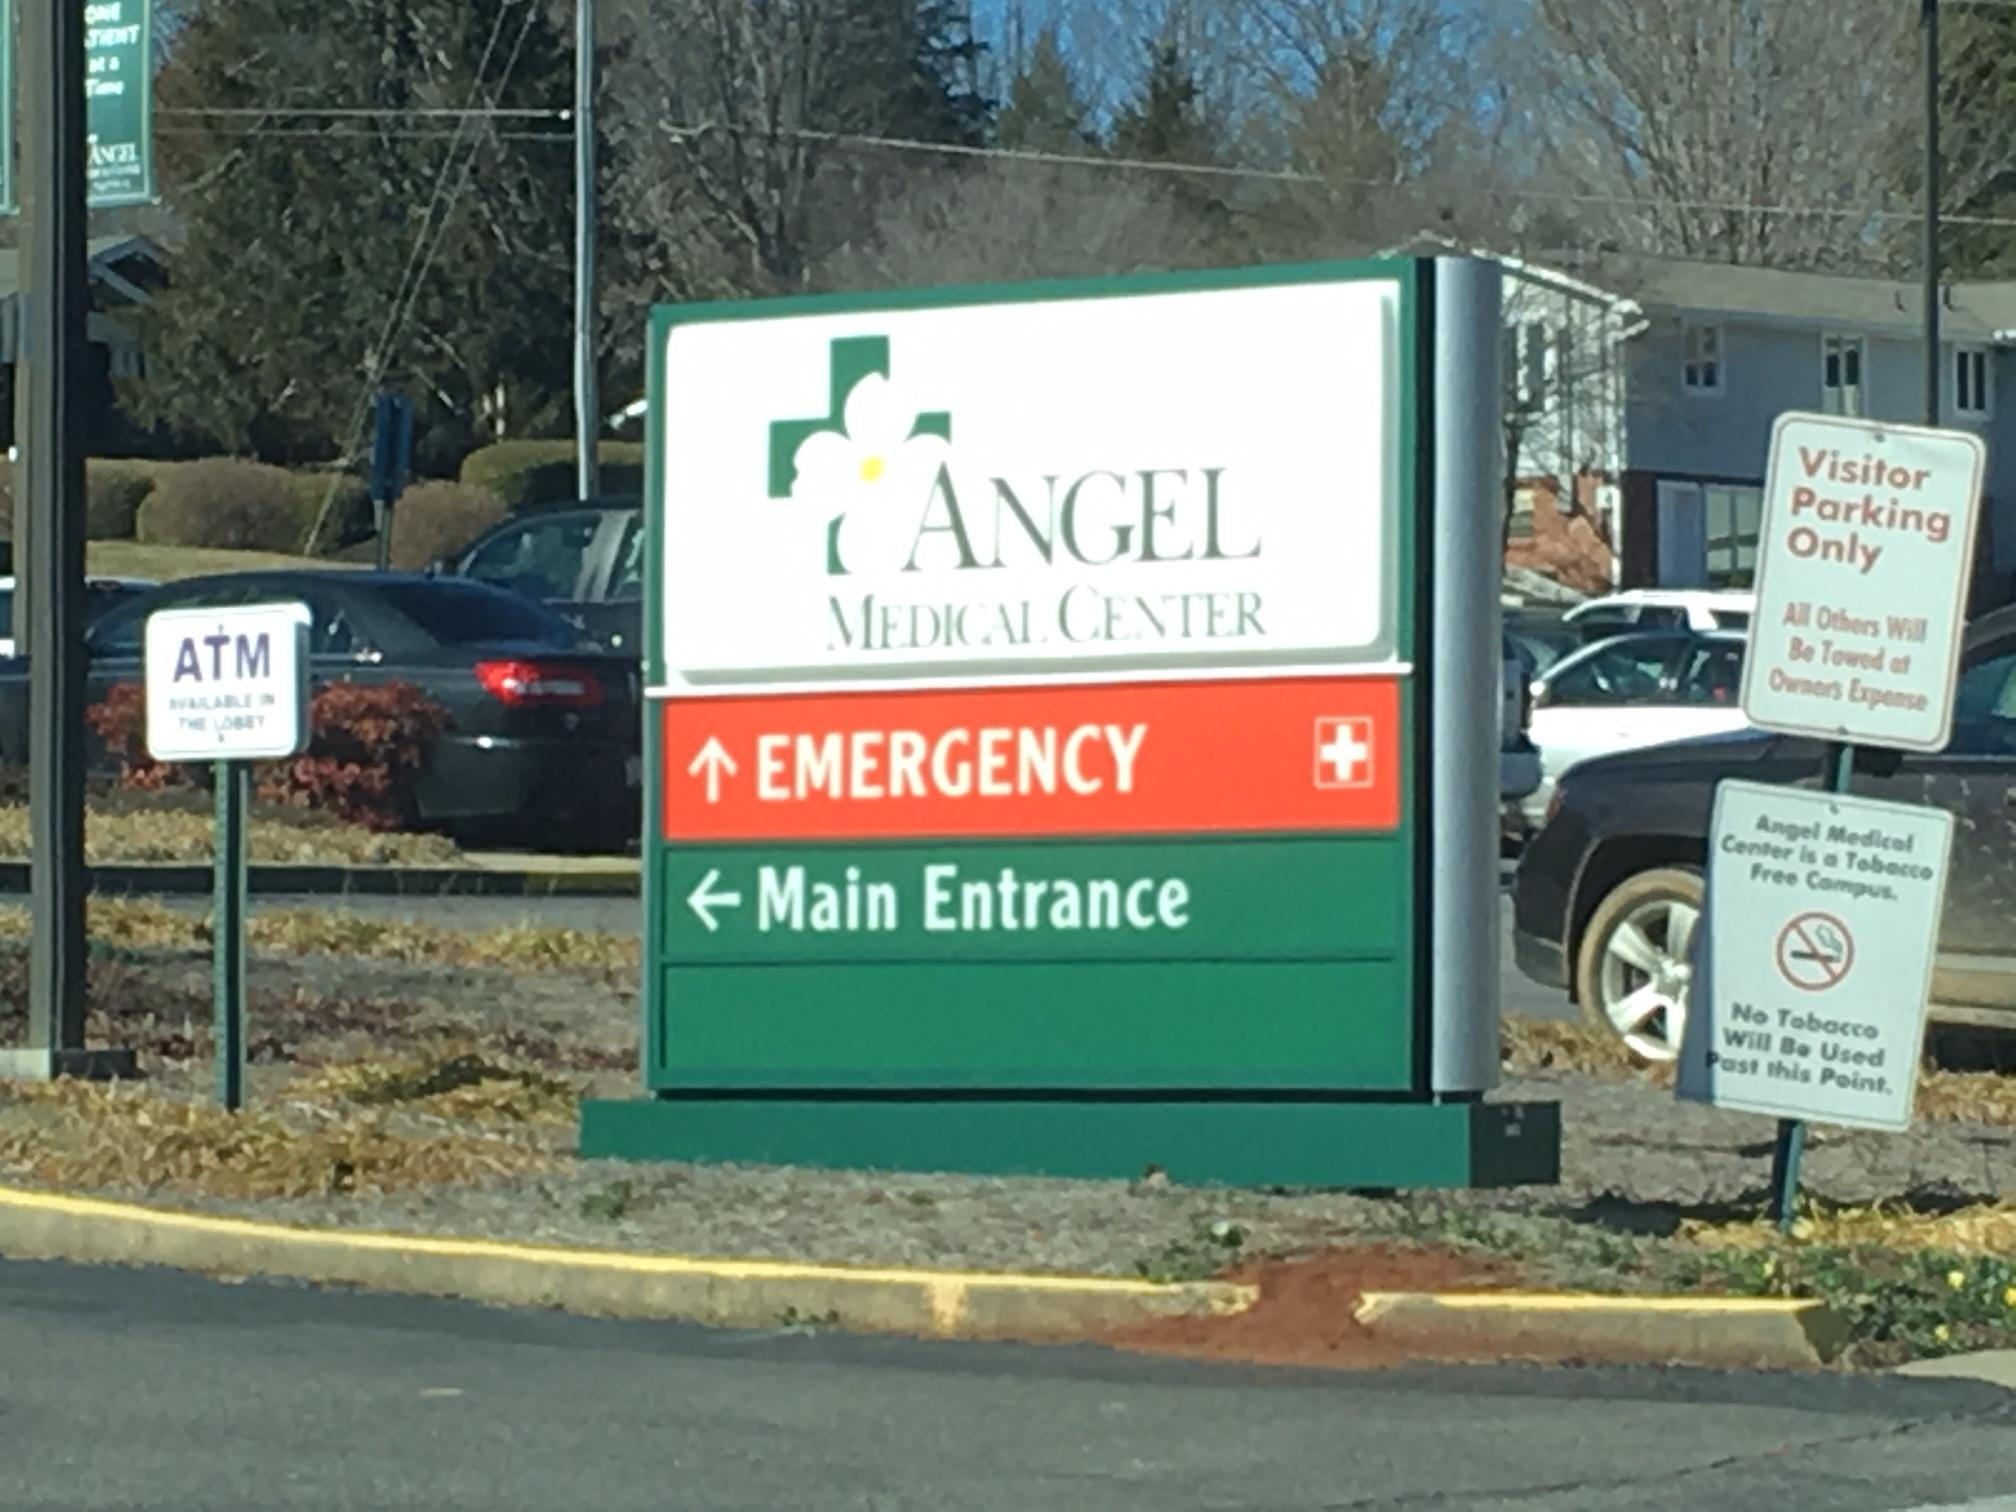 Mission Health is considering re-positioning its medical helicopter currently based at Angel Medical Center in Franklin. (photo credit: WLOS staff)